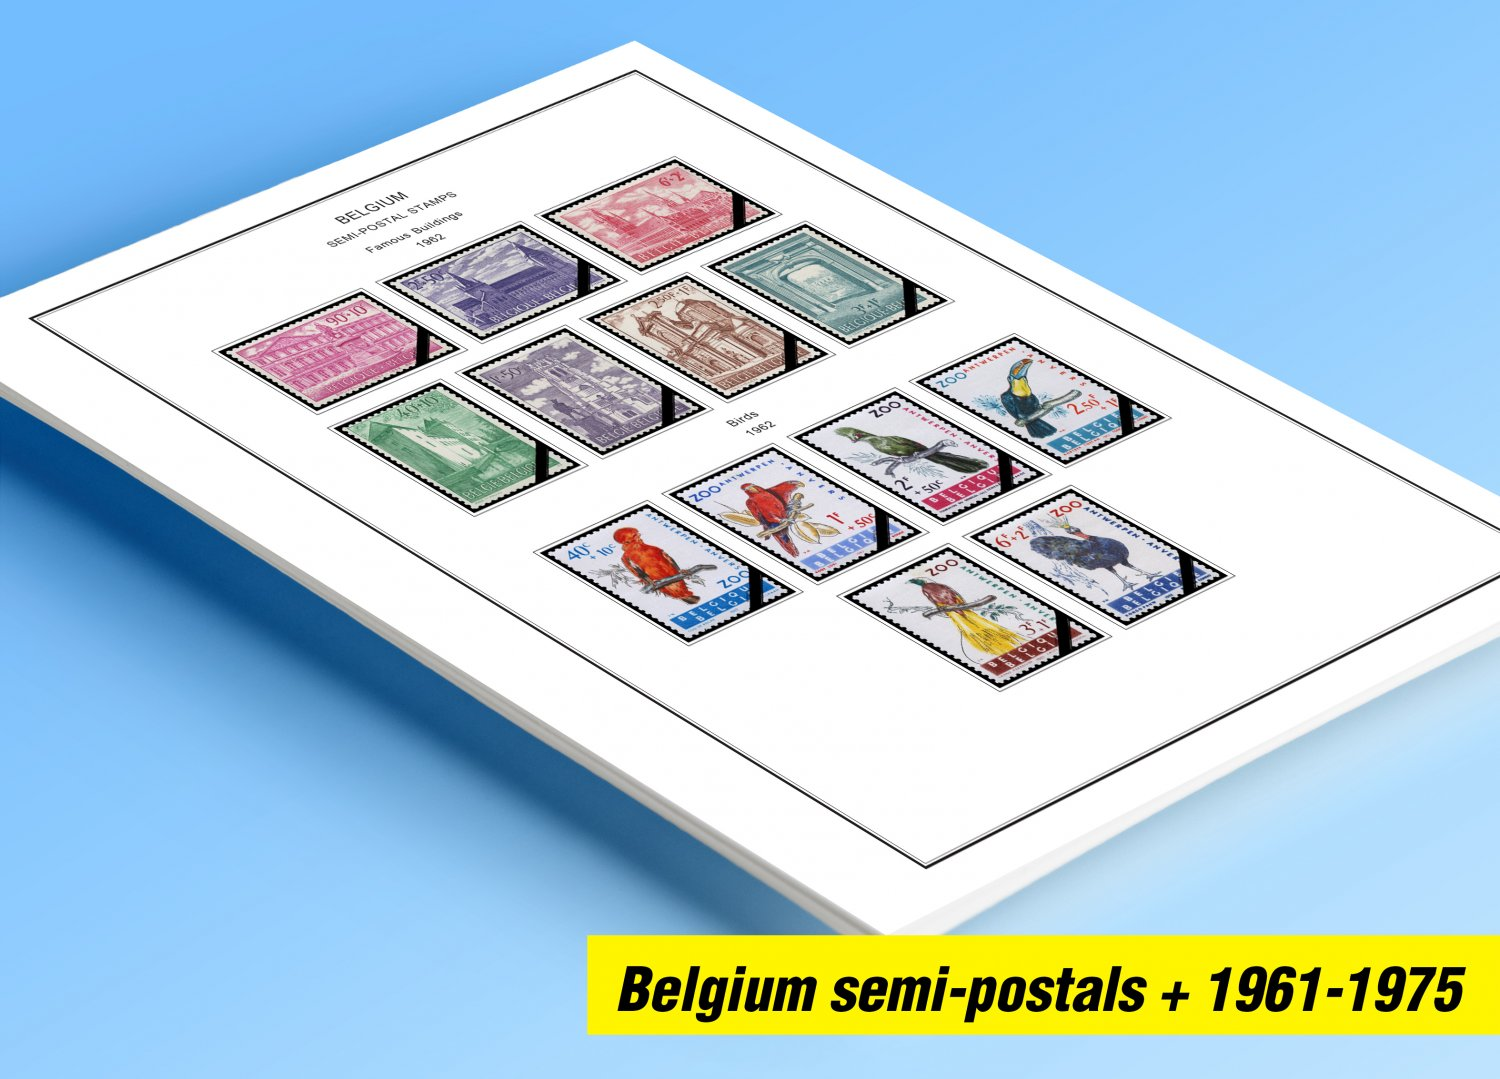 COLOR PRINTED BELGIUM SEMI-POSTALS 1961-1975 STAMP ALBUM PAGES (37 illustrated pages)